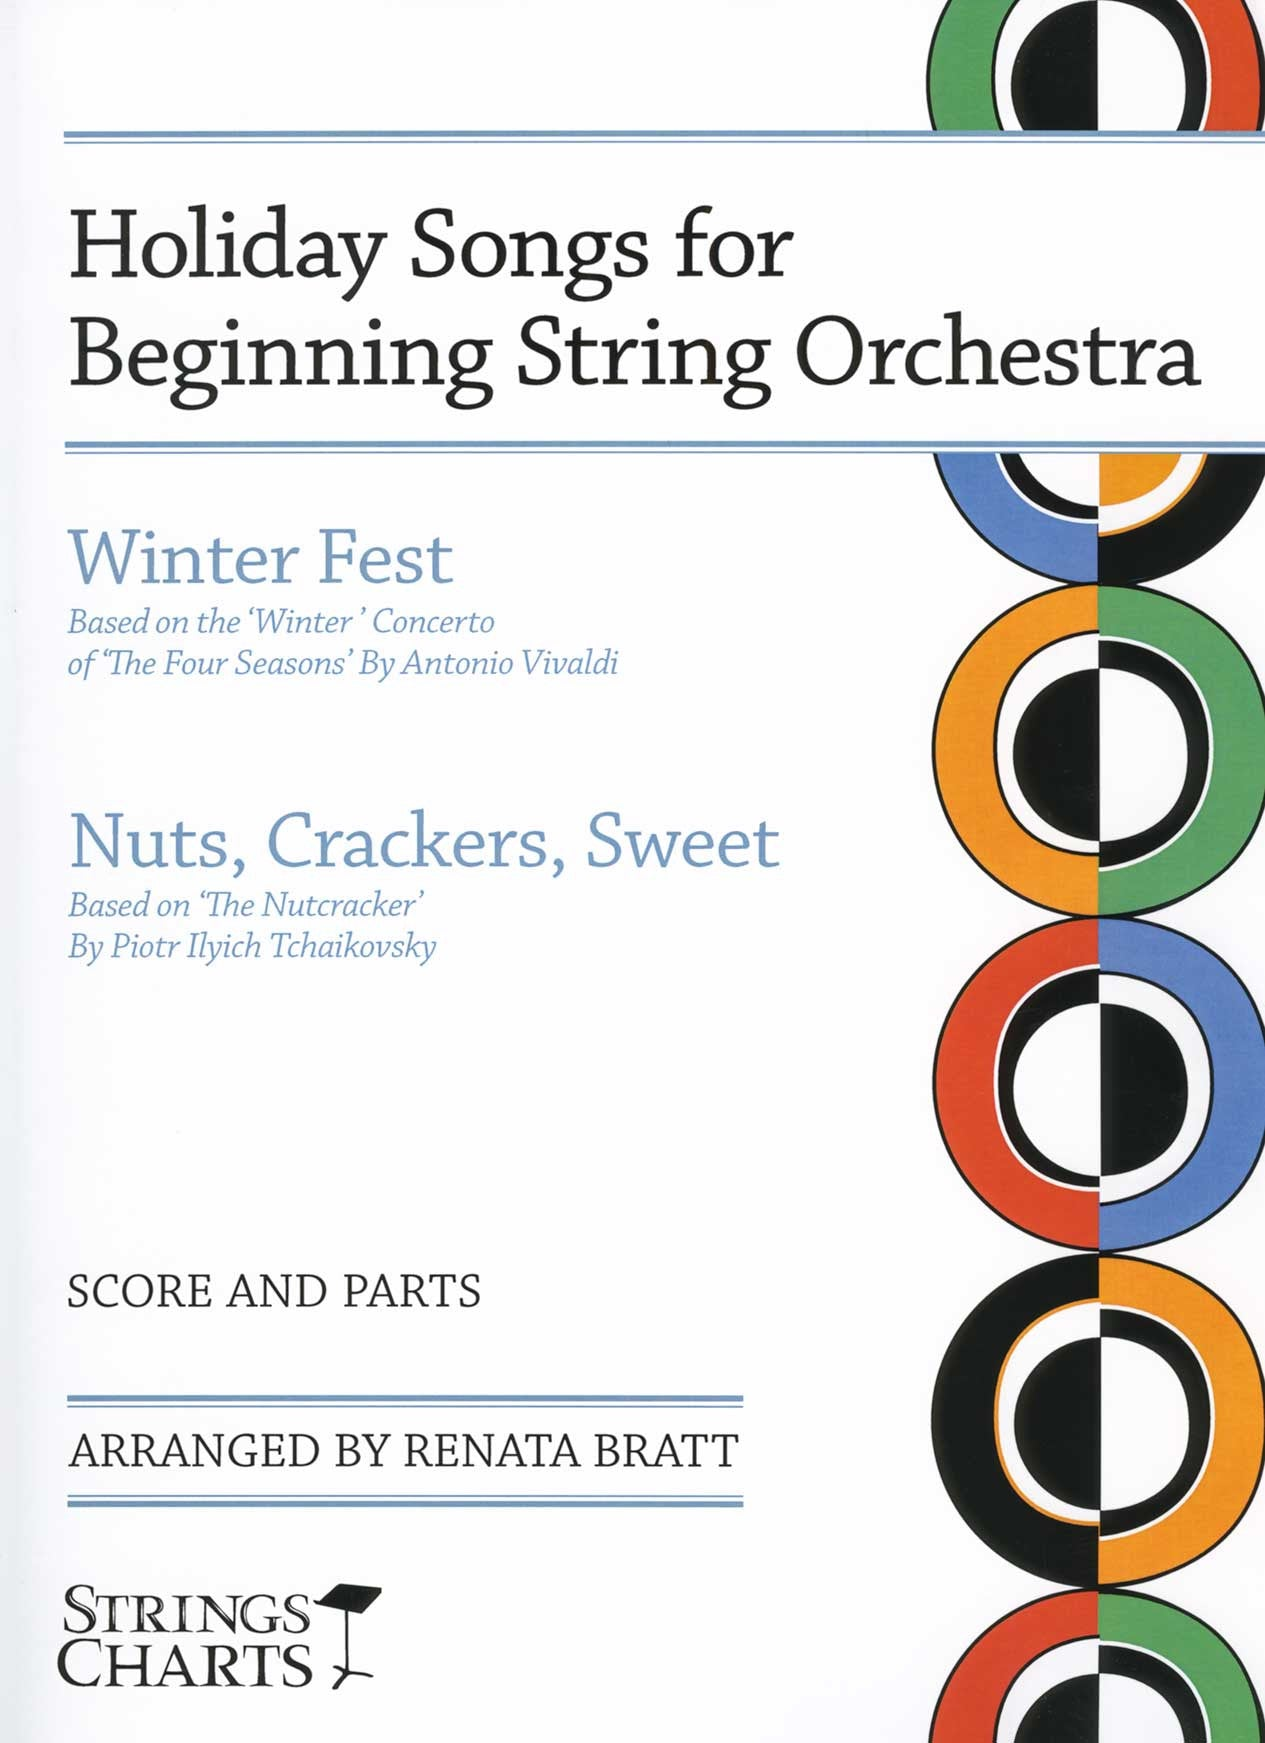 Holiday Songs for Beginning String Orchestra: Winter Fest and Nuts, Crackers, Sweet